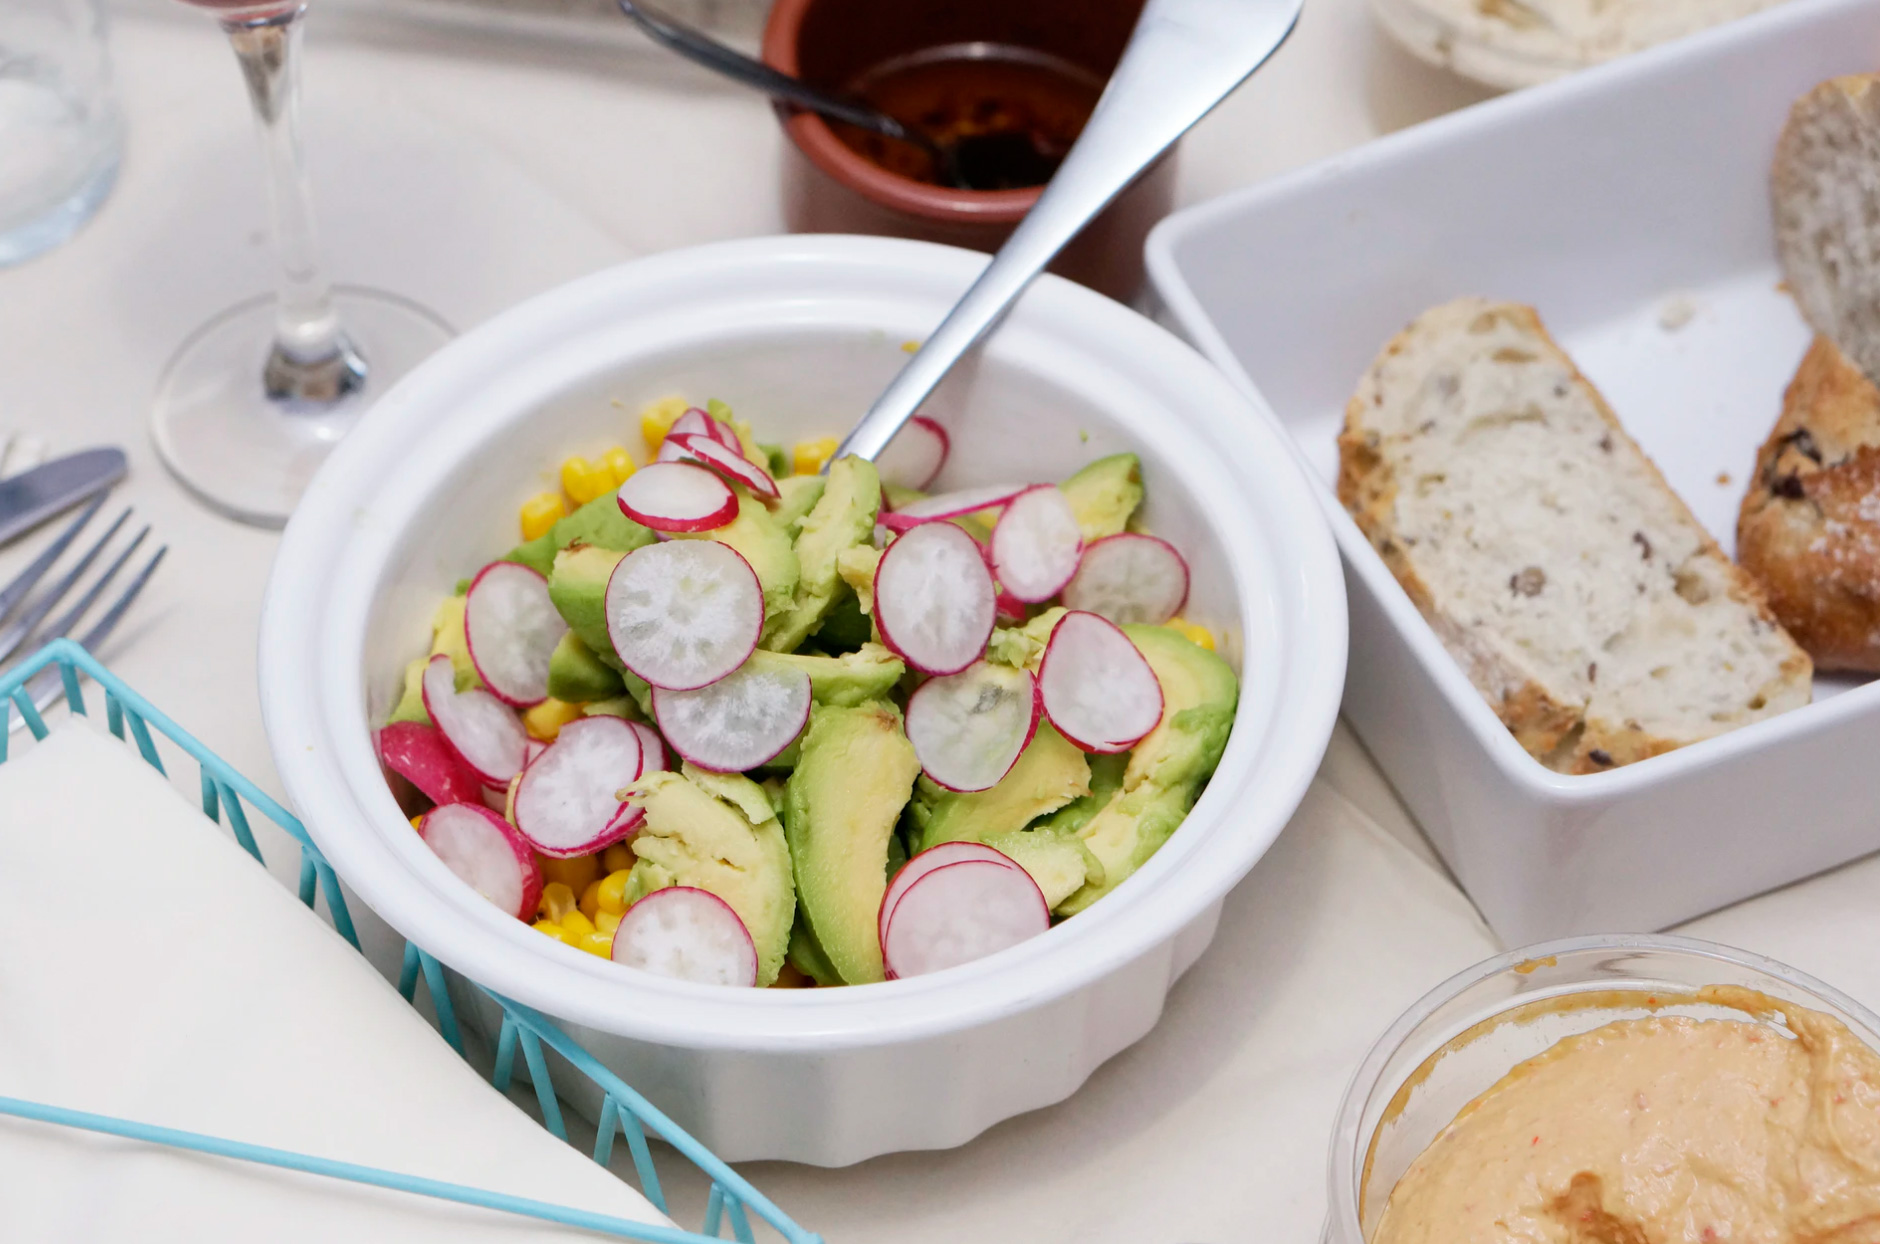 Avocado salad with radish and hummus and homemade bread, image from Unsplash - by Maria Vig